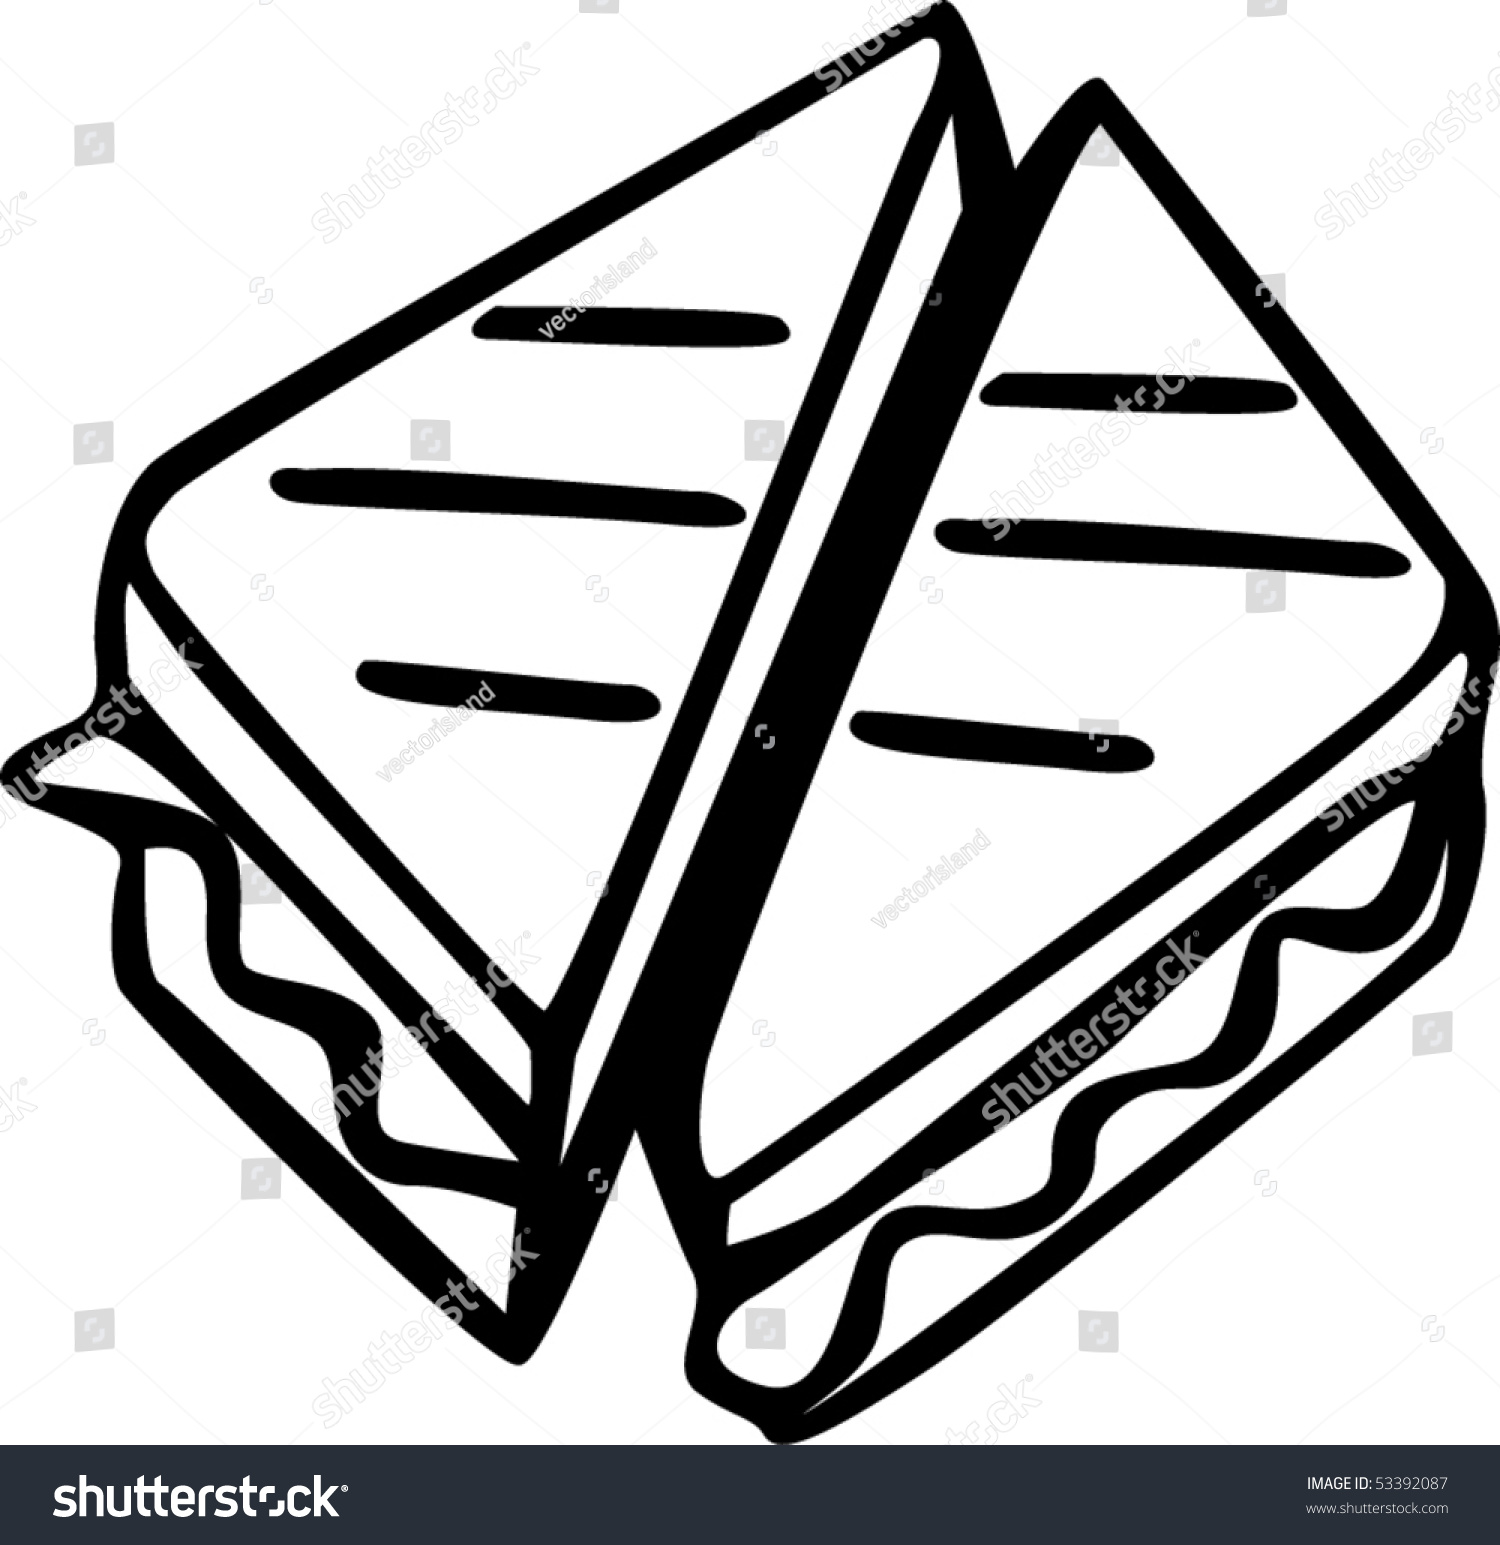 grilled cheese sandwich stock vector 53392087 shutterstock rh shutterstock com national grilled cheese day clipart